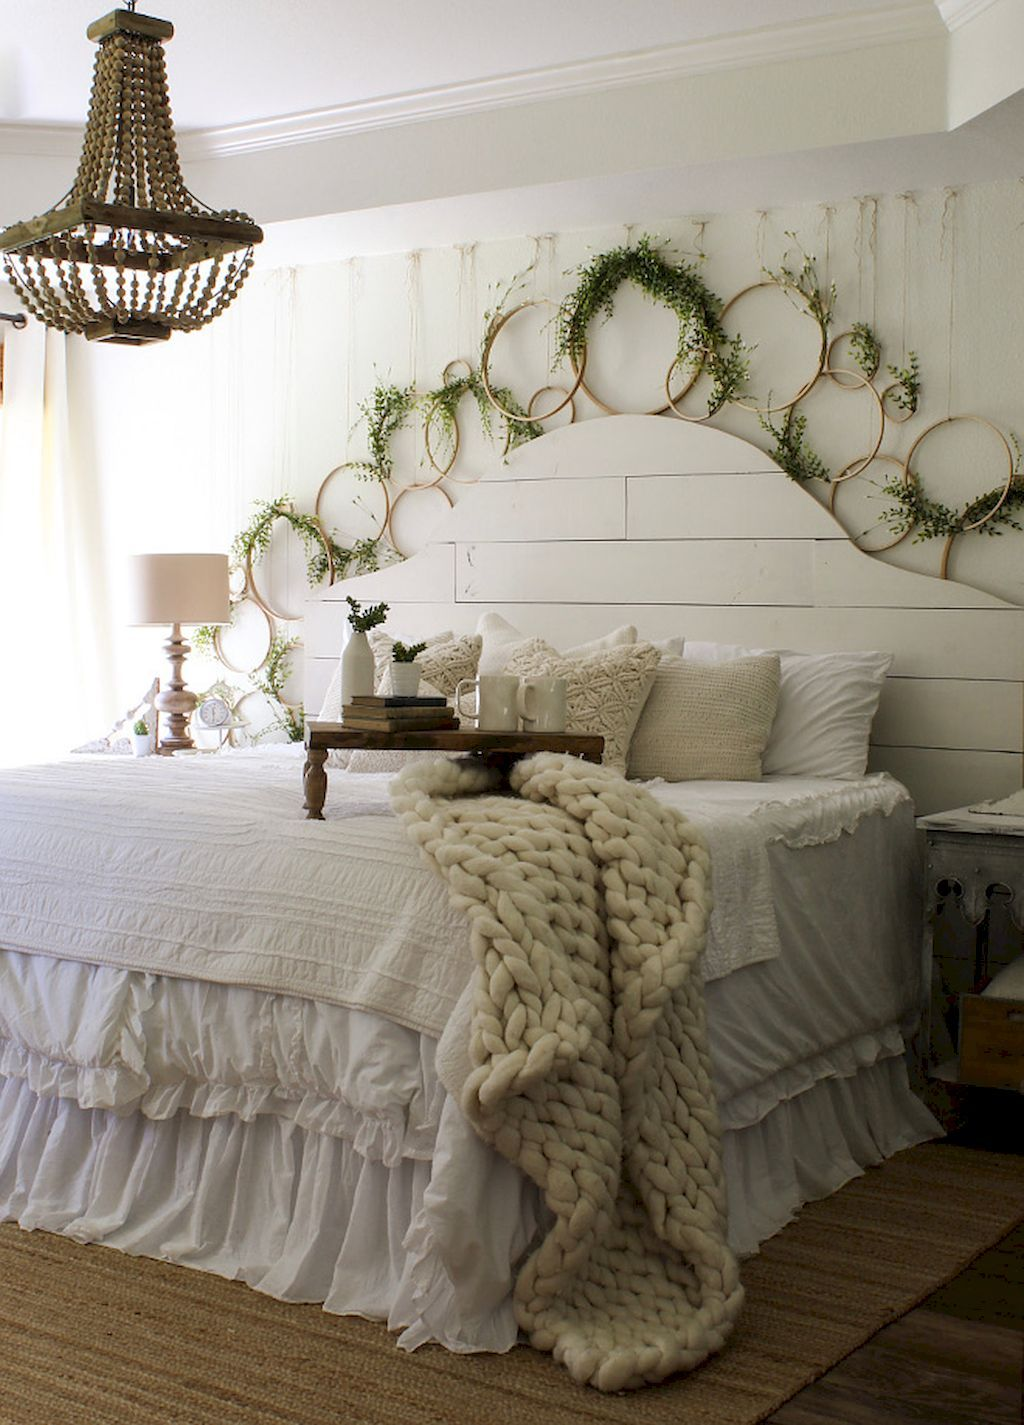 50 Rustic Lake House Bedroom Decorating Ideas | Lake house bedrooms ...